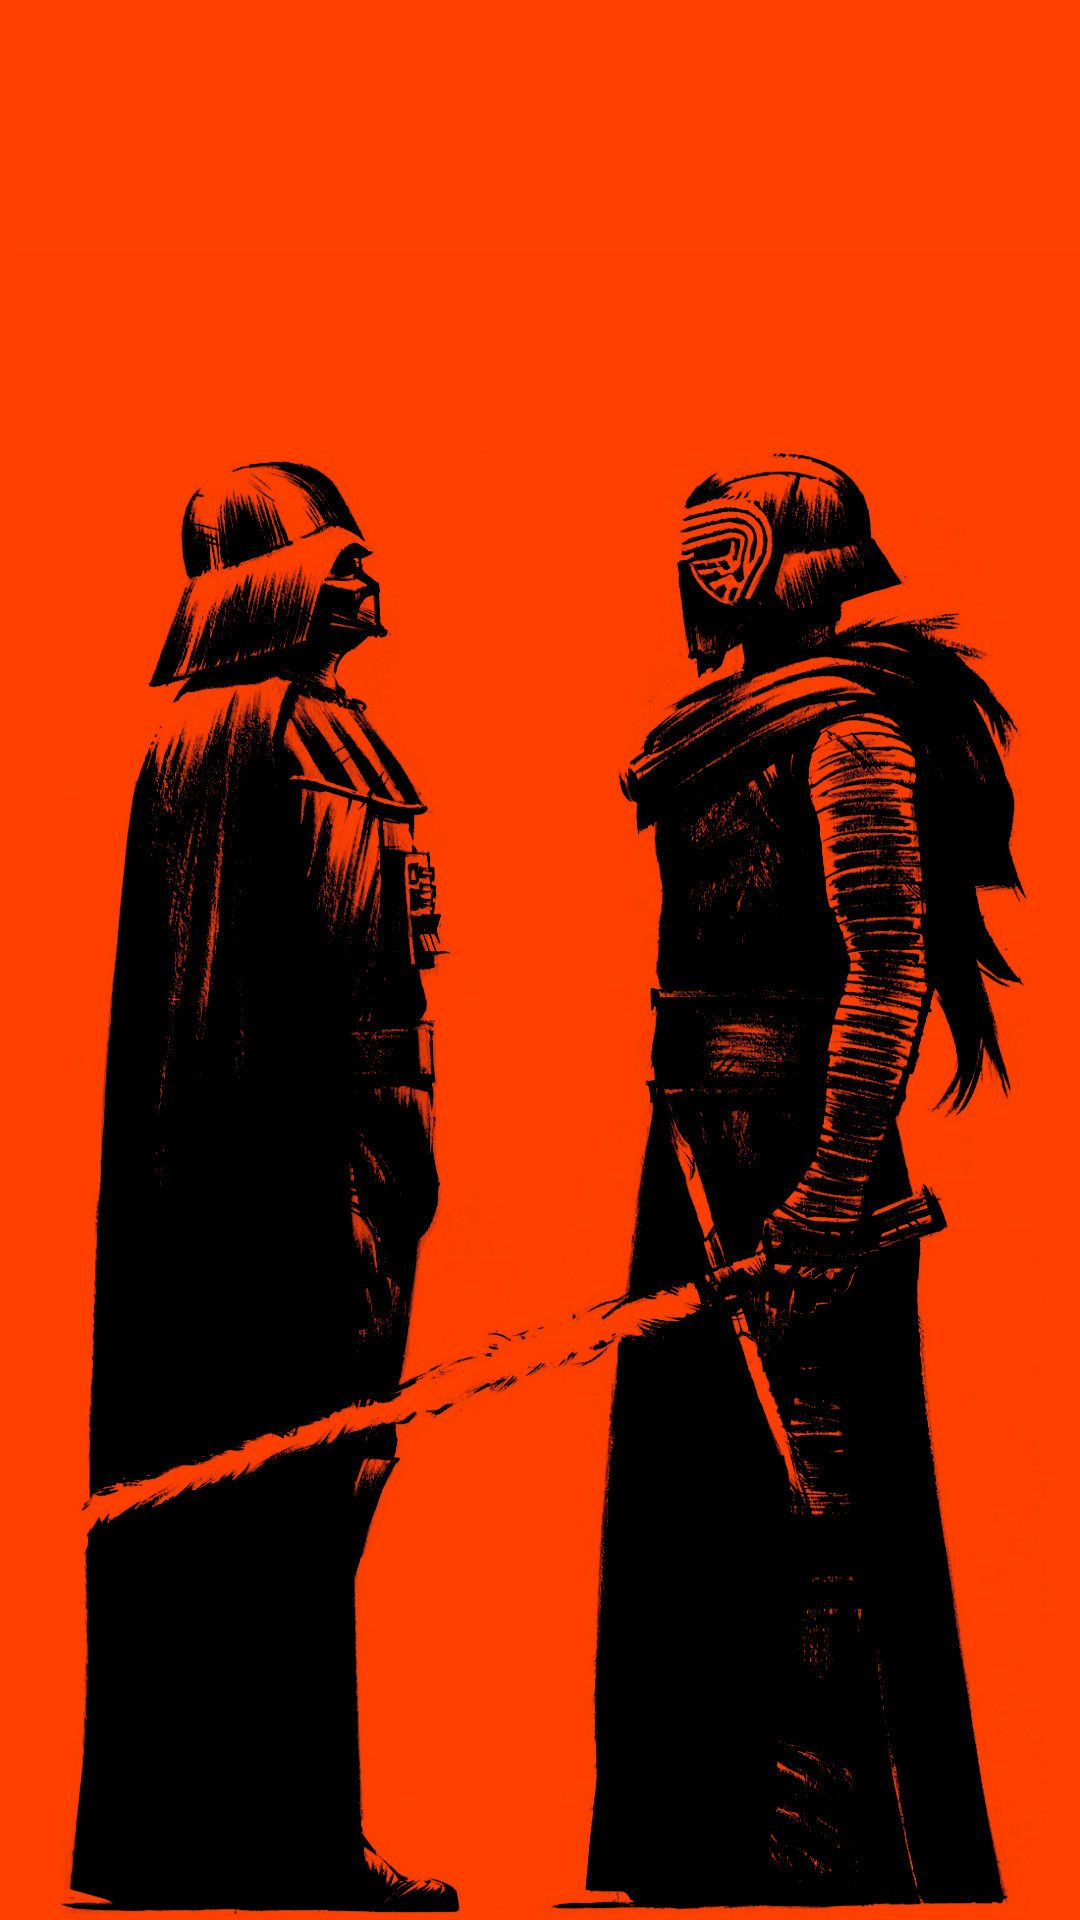 55 Star Wars Samurai Images Hd Photos 1080p Wallpapers Android Iphone 2020